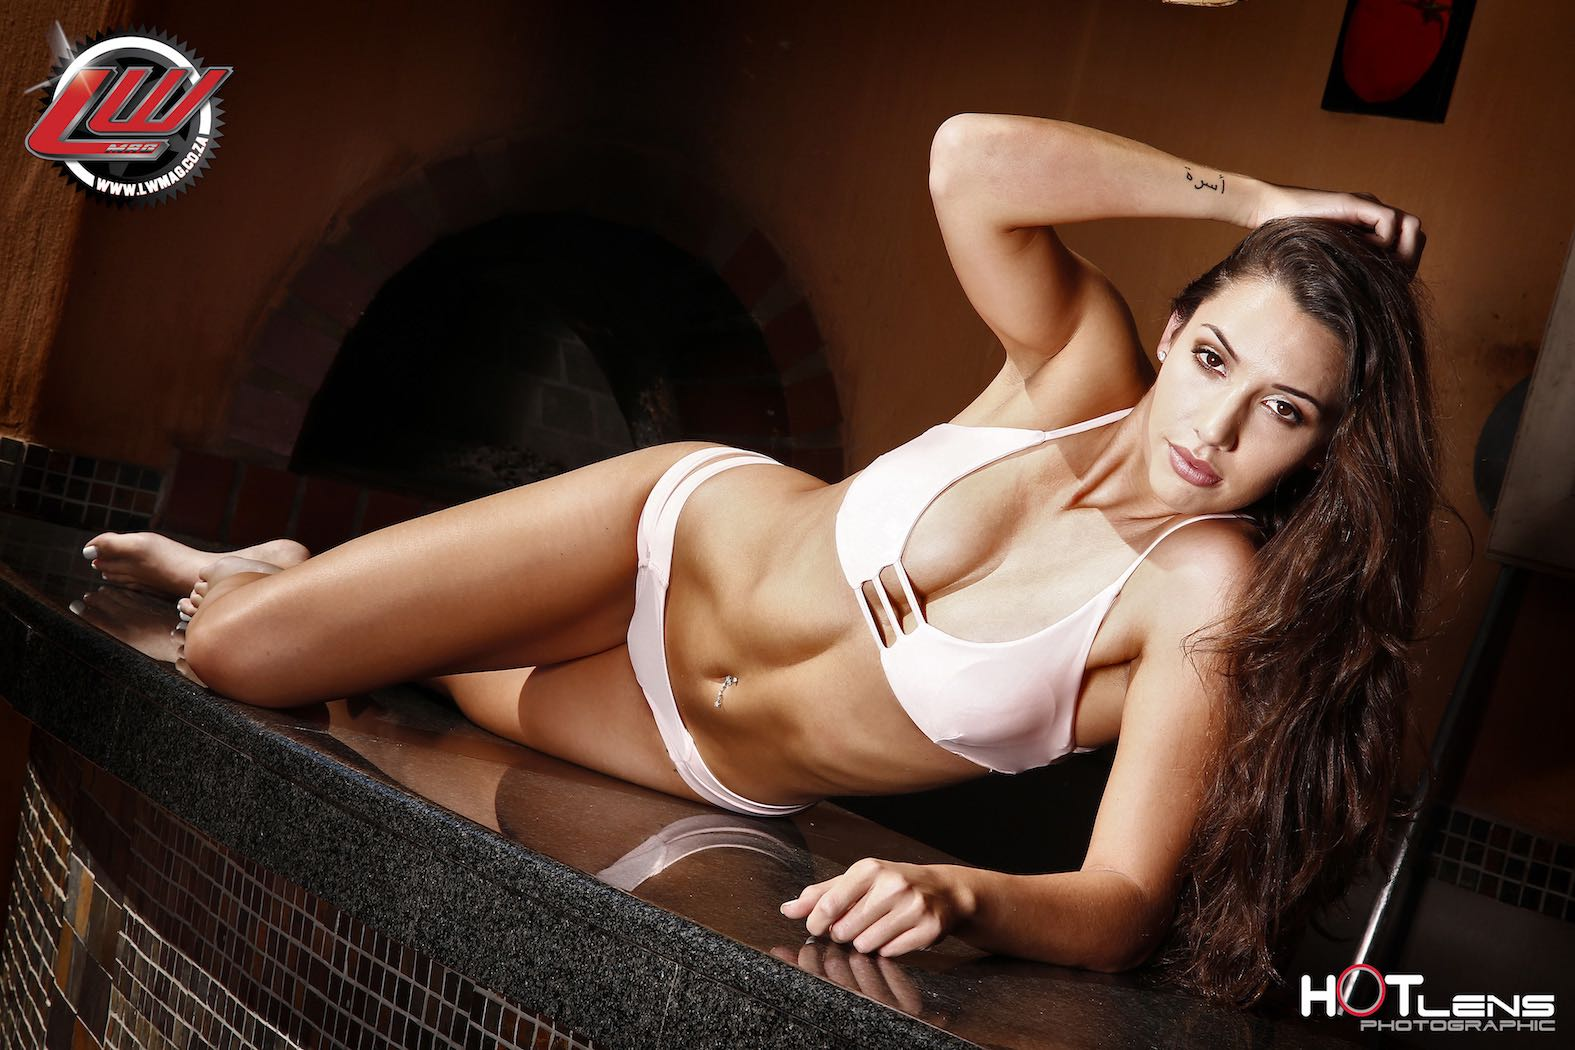 Meet Danielle Masters as our LW babe of the Week